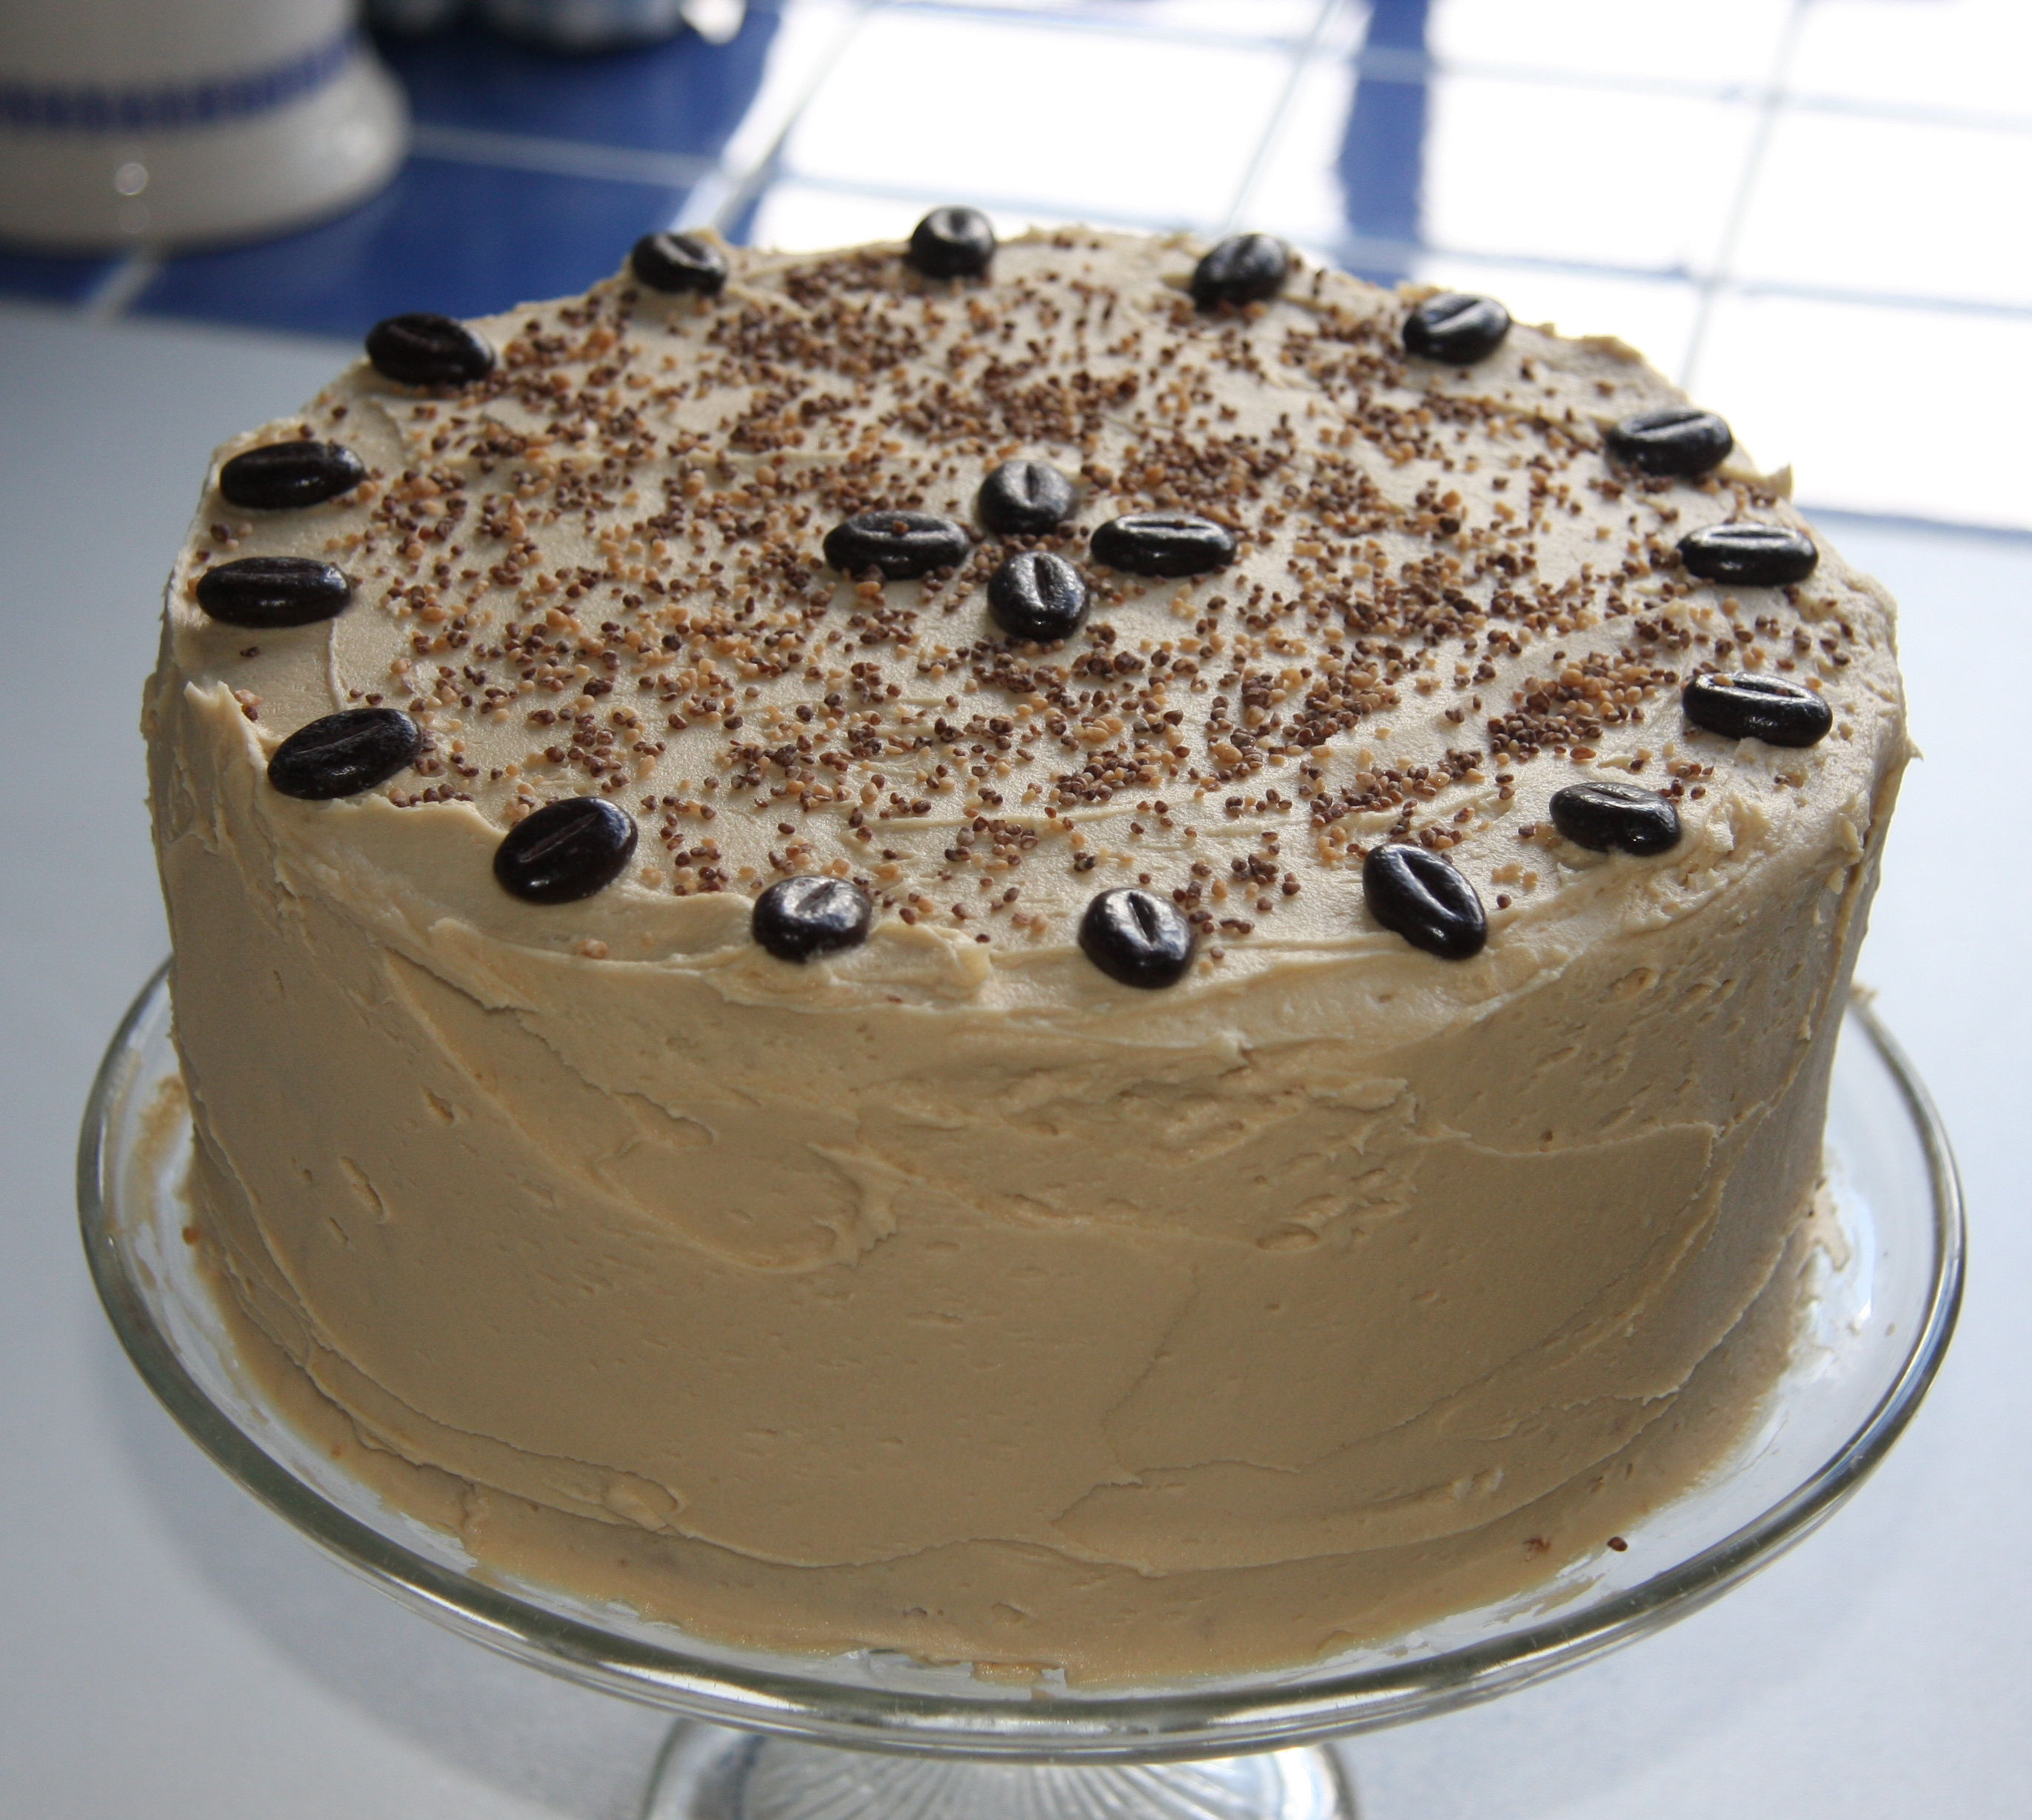 Chocolate Cake Recipe Using Coffee